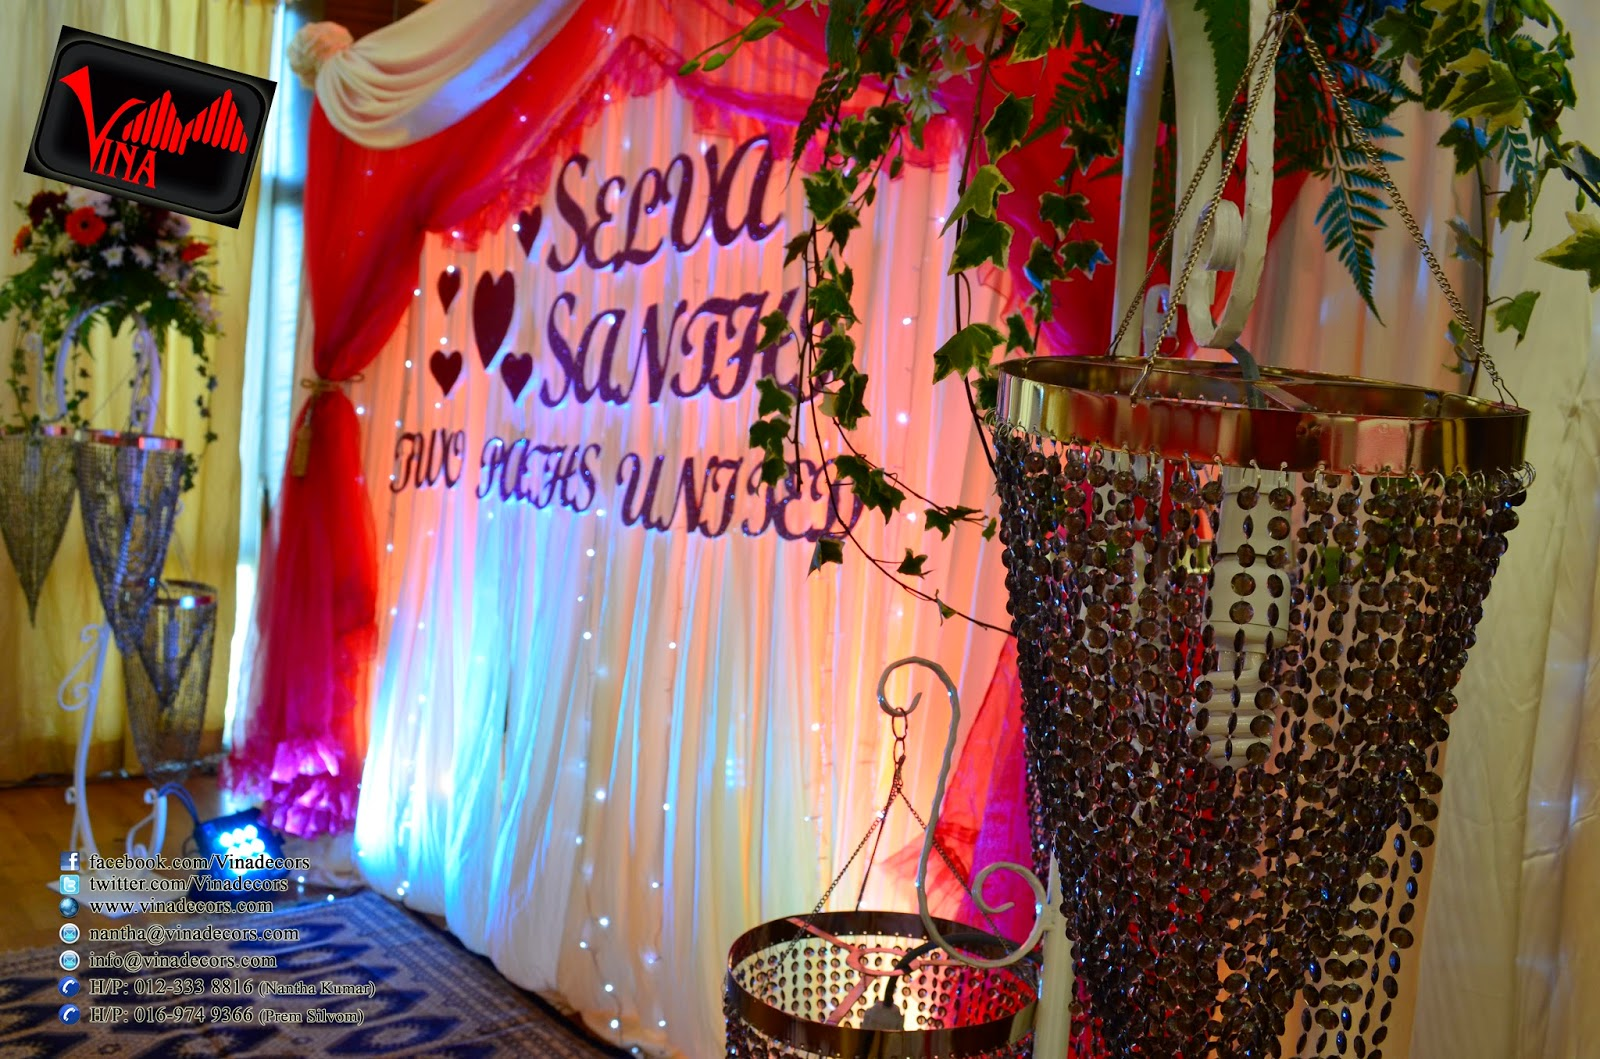 Wedding Dinner Decoration at Sri Putra Mas Condo, Multipurpose Hall, off Jalan Kuching for Selva weds Shanti on 22/02/2014 (Backdrop, Crystal Pillar, Entrance Arch, Table and Chair Setting by Vina Canopy & Decor)